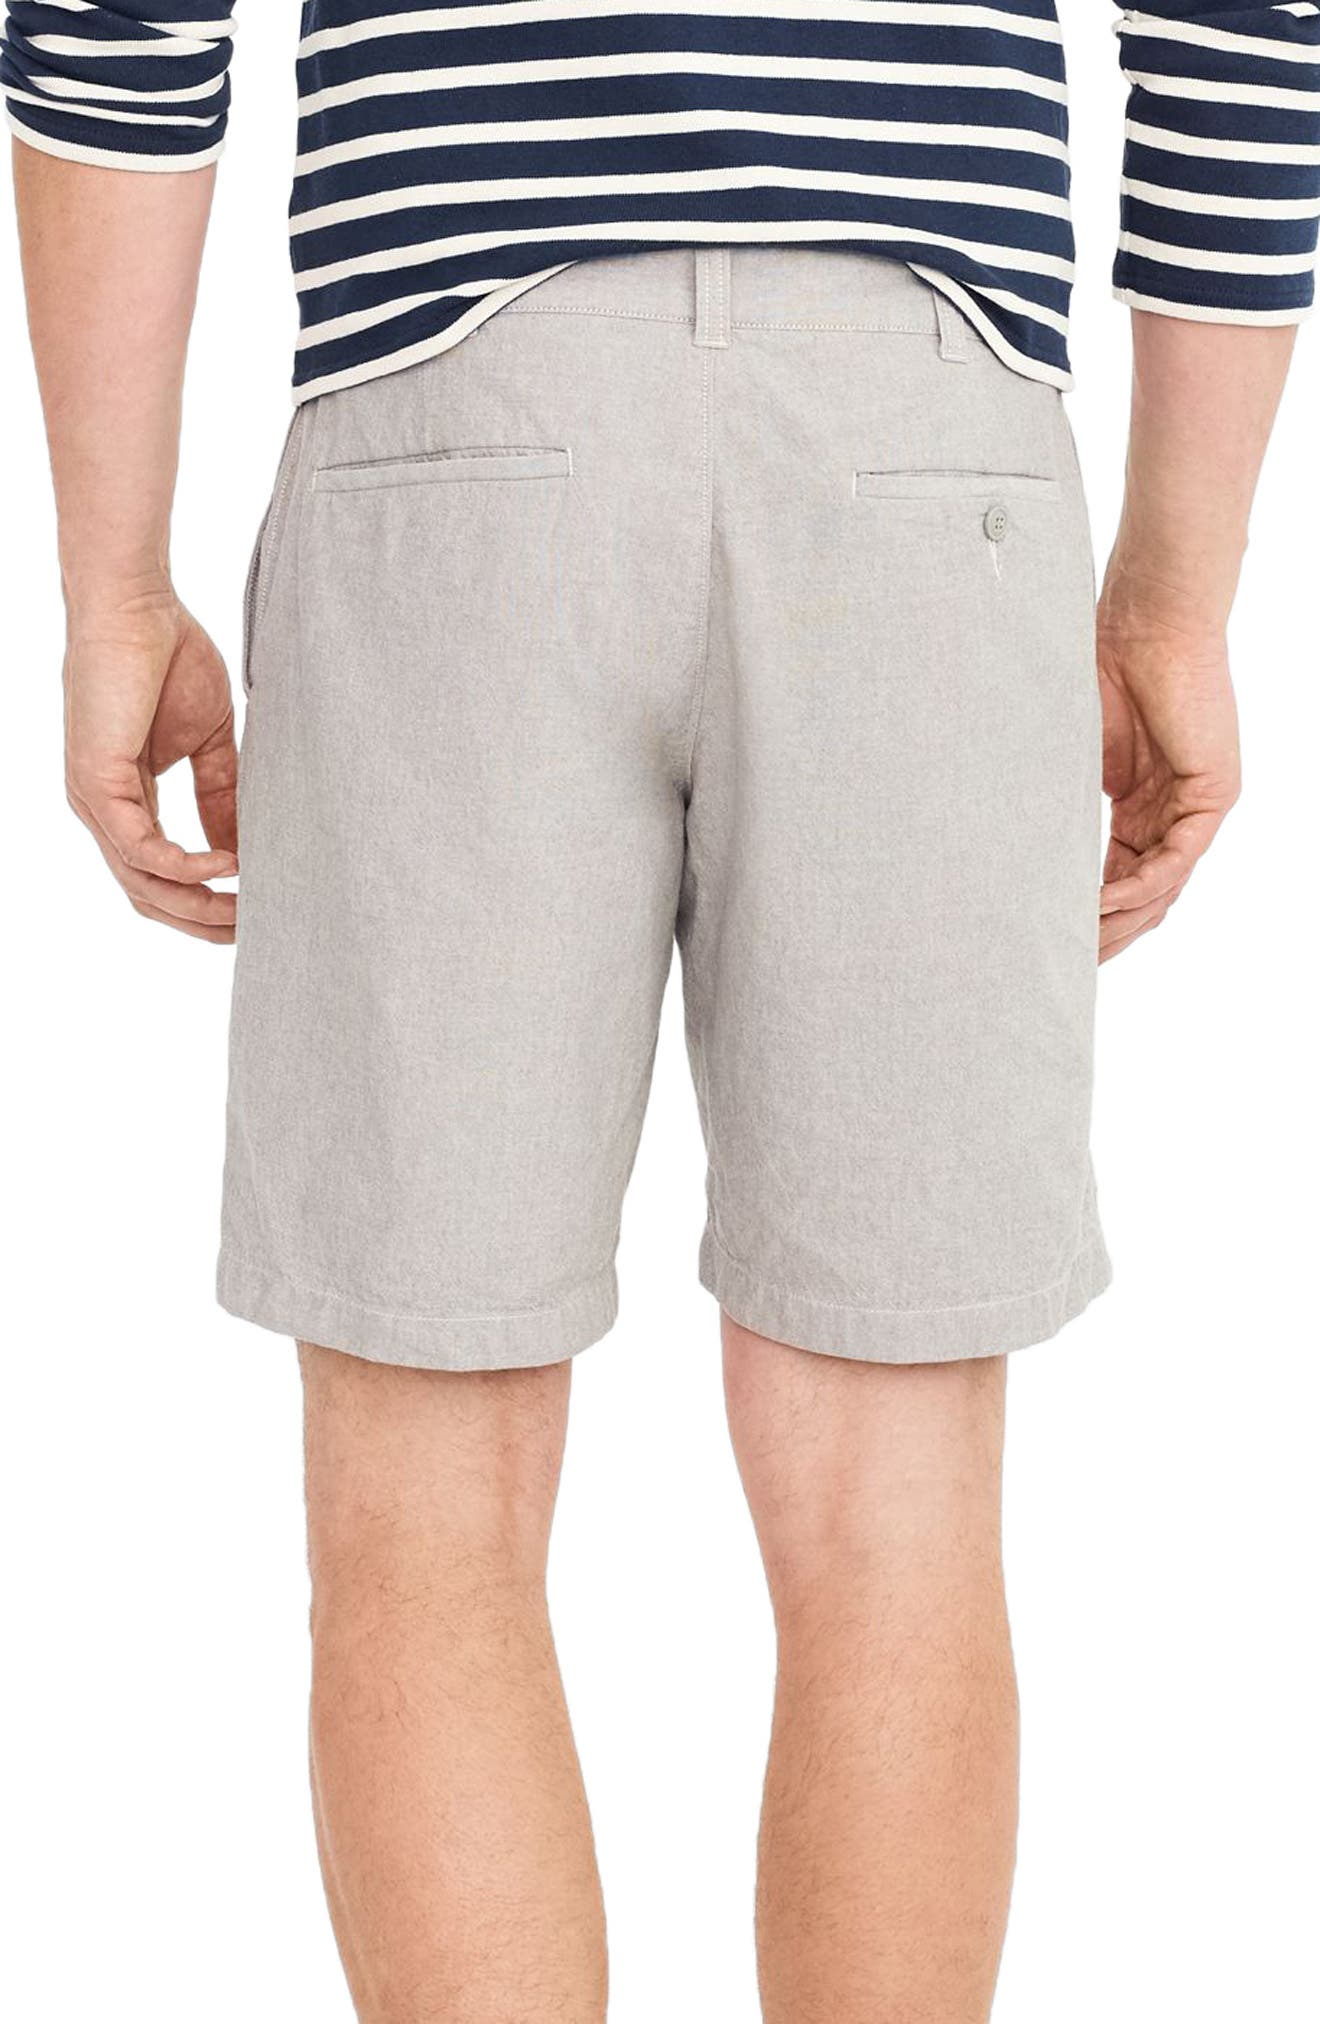 Stretch Chambray Shorts,                             Alternate thumbnail 2, color,                             020